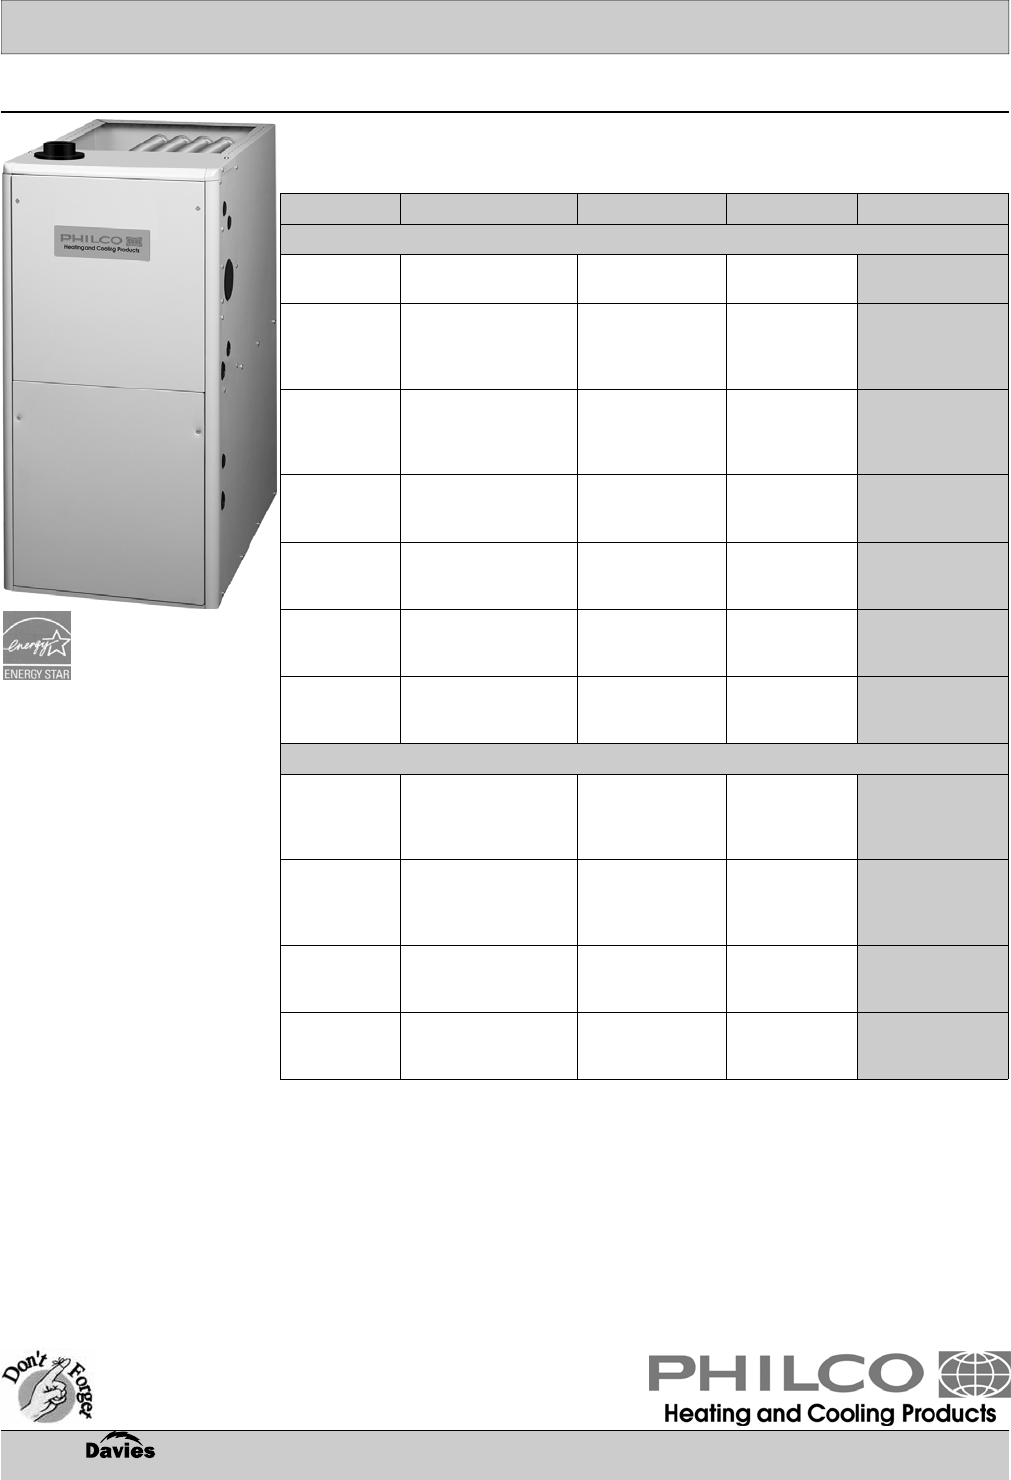 Frigidaire KG7 User Manual To The 15136040 e079 454c 8422 ... on